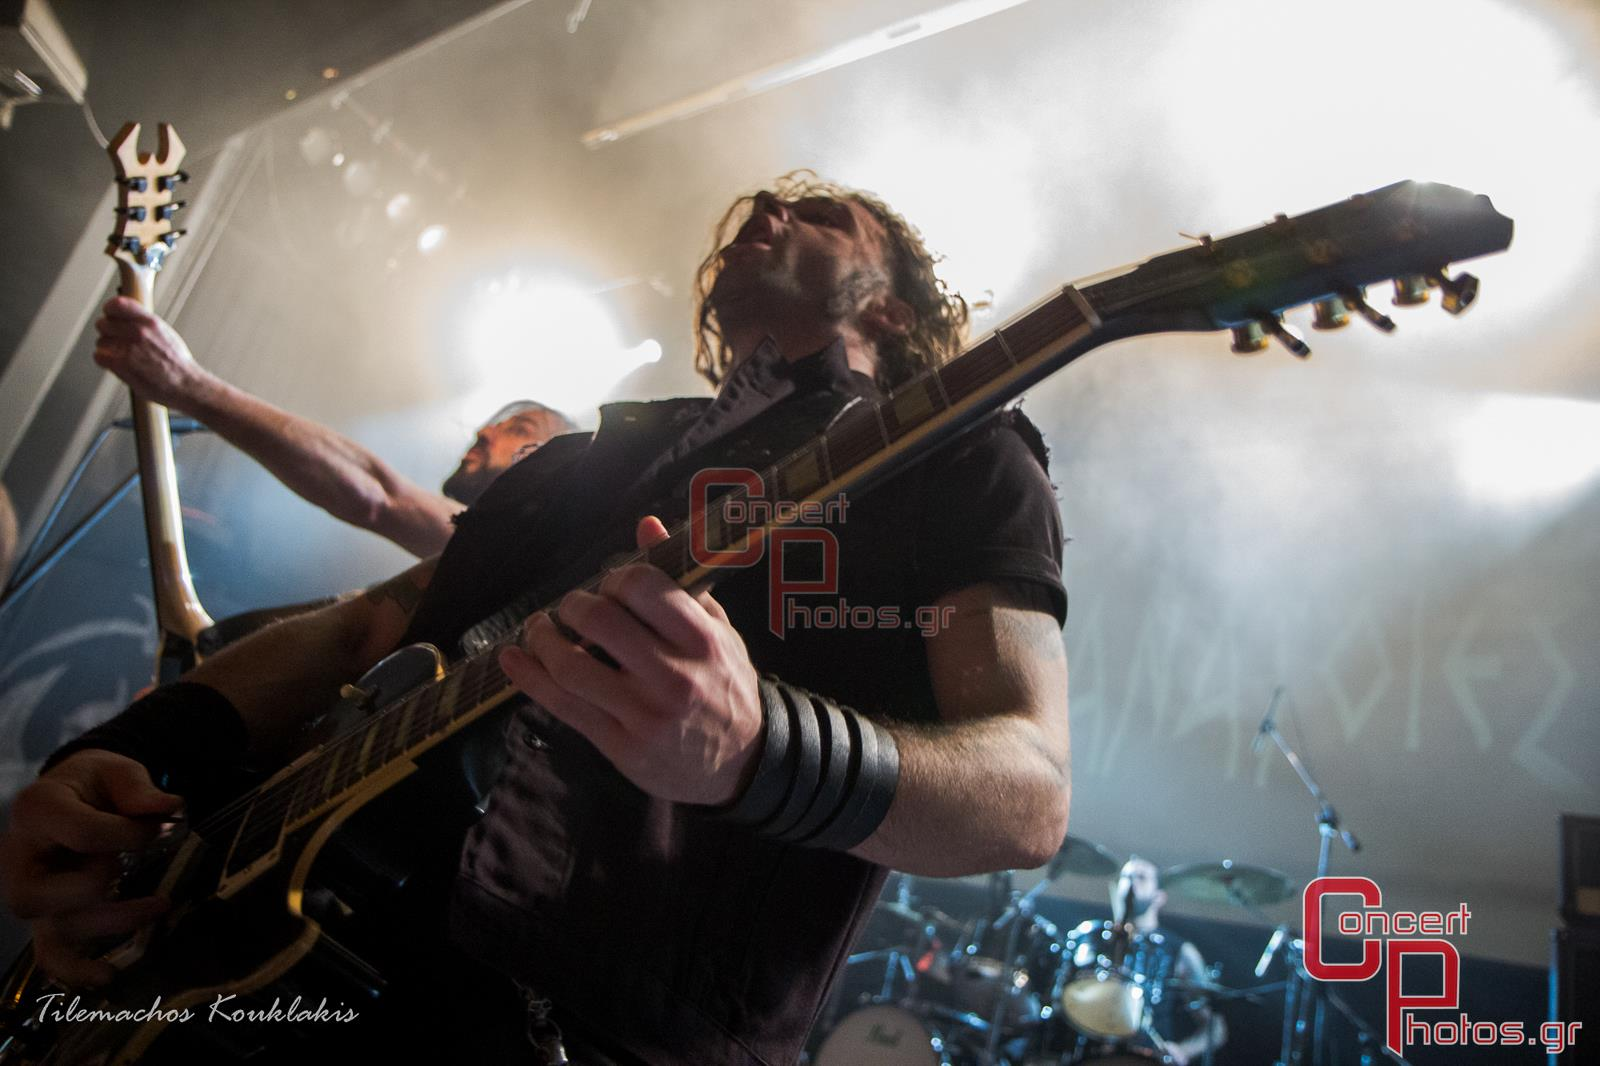 Rotting Christ-Rotting Christ photographer:  - ConcertPhotos-5181